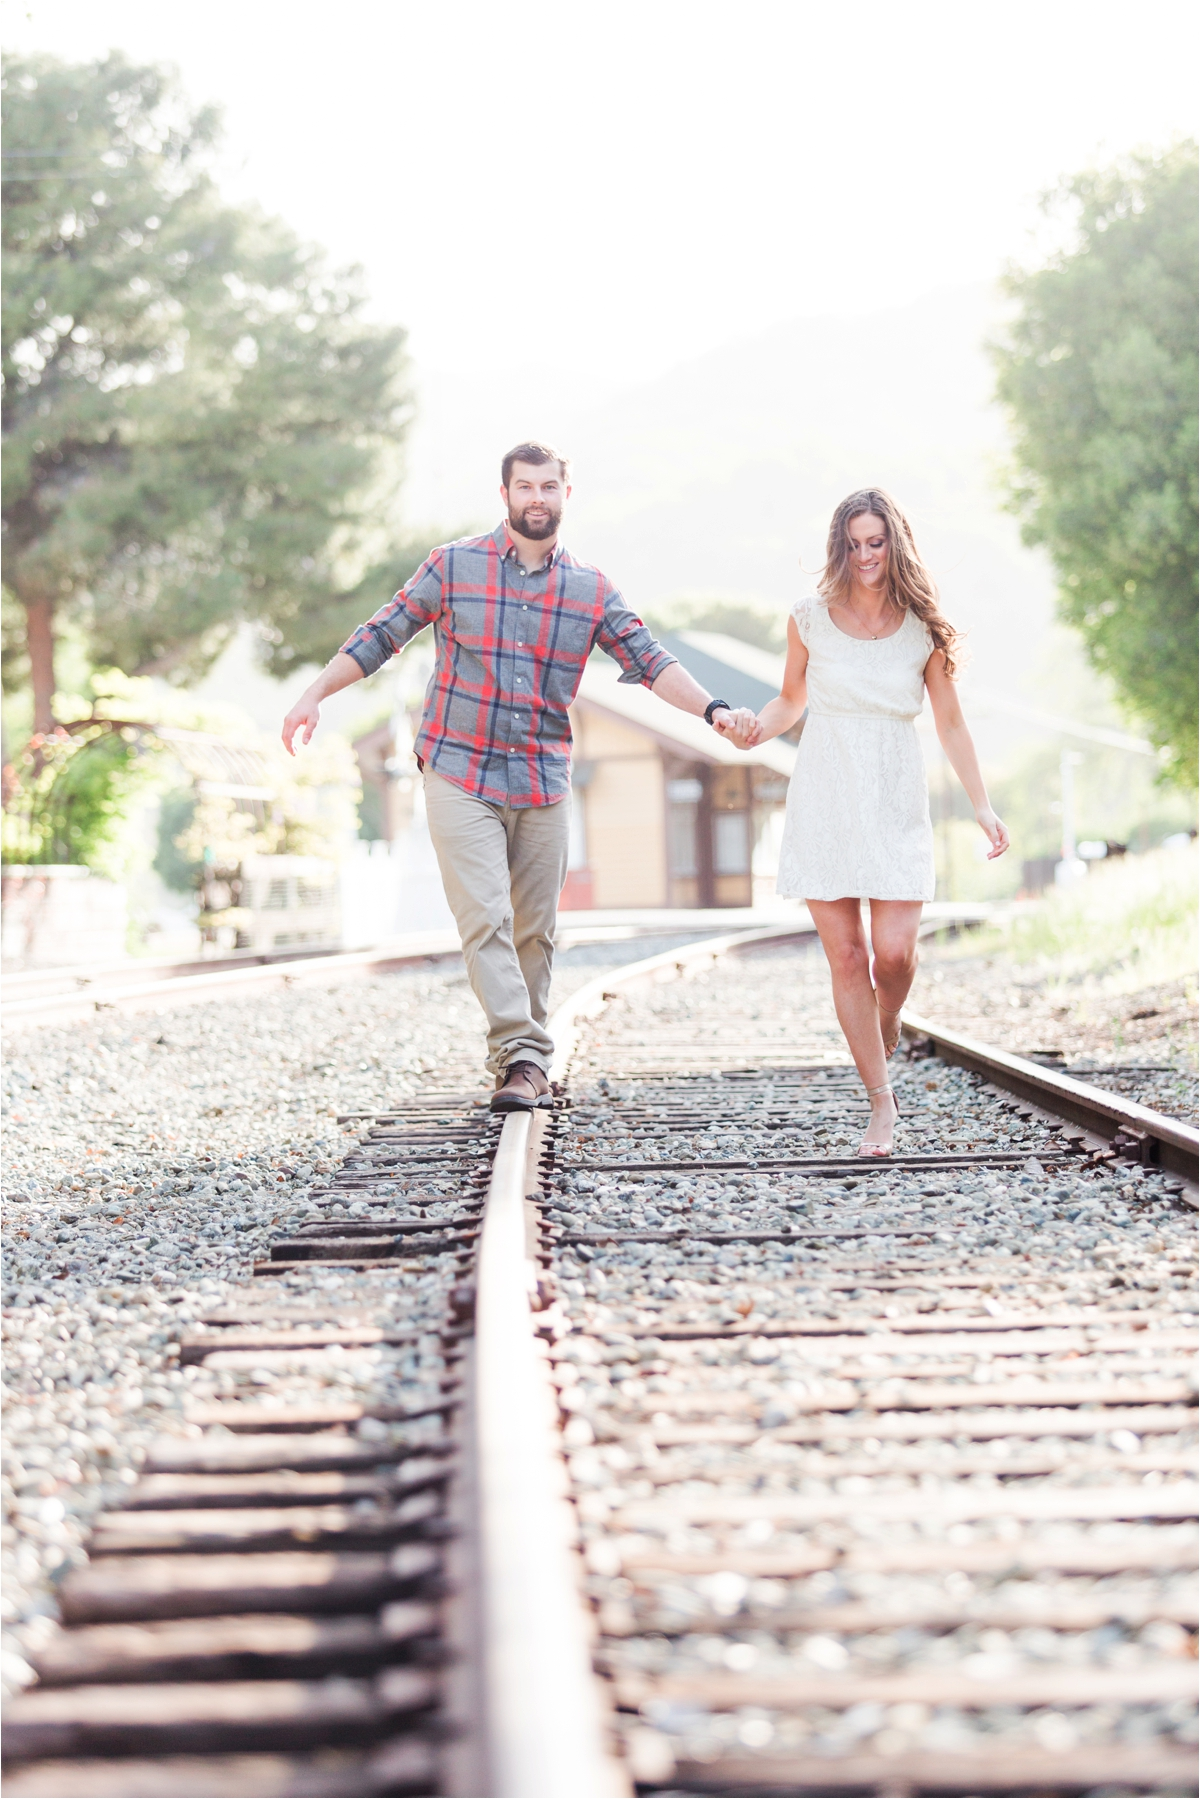 Engagement shoot in downtown Sunol, CA with train tracks and urban graffiti. Photos by Briana Calderon Photography based in San Francisco Bay Area in California.